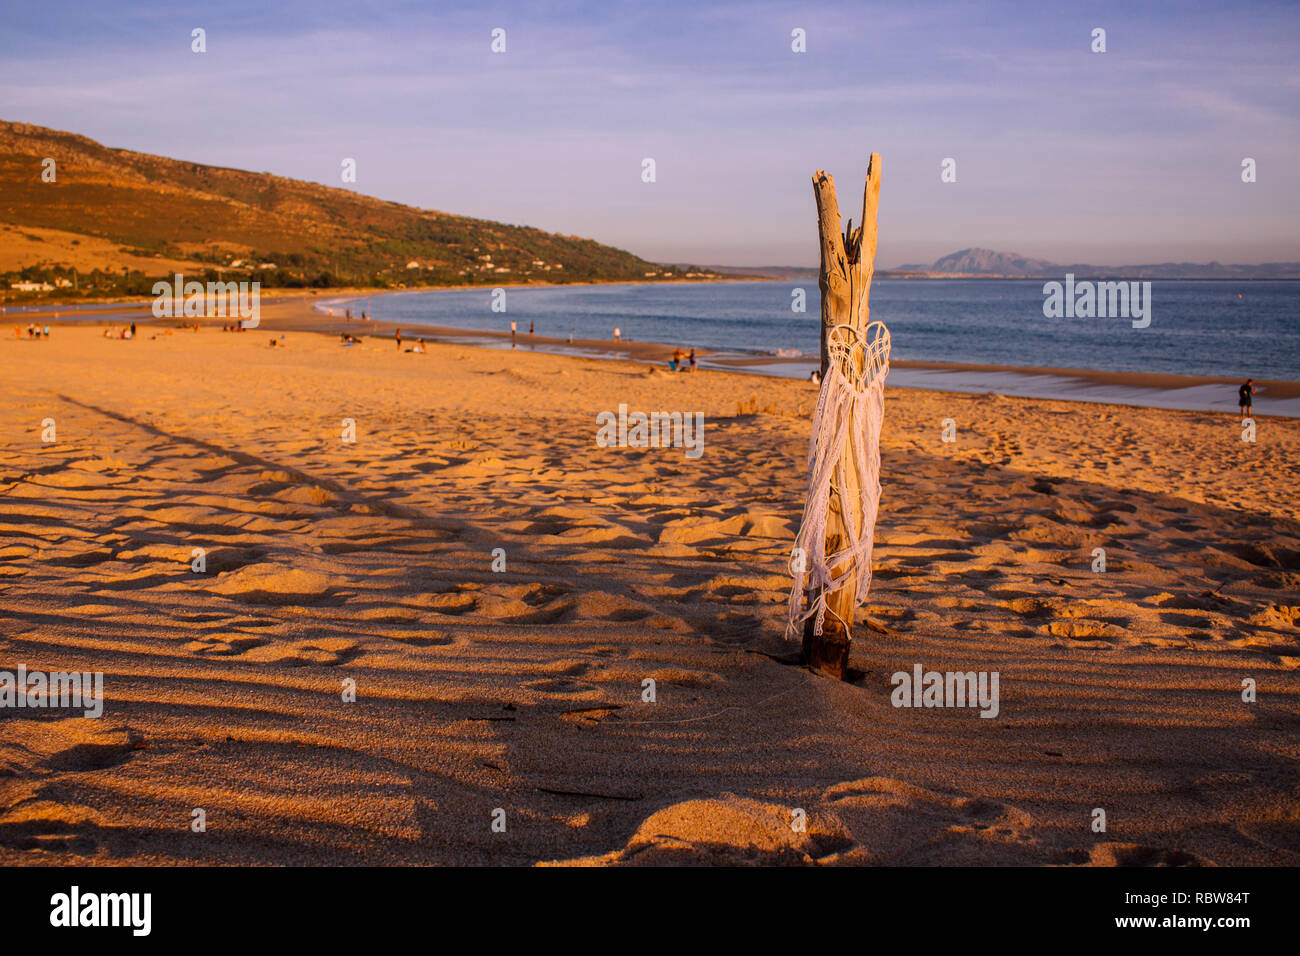 "Dreamcatcher on the beach. ""Punta Paloma"" beach. Atlantic ocean, Tarifa, Andalusia, Spain. - Stock Image"